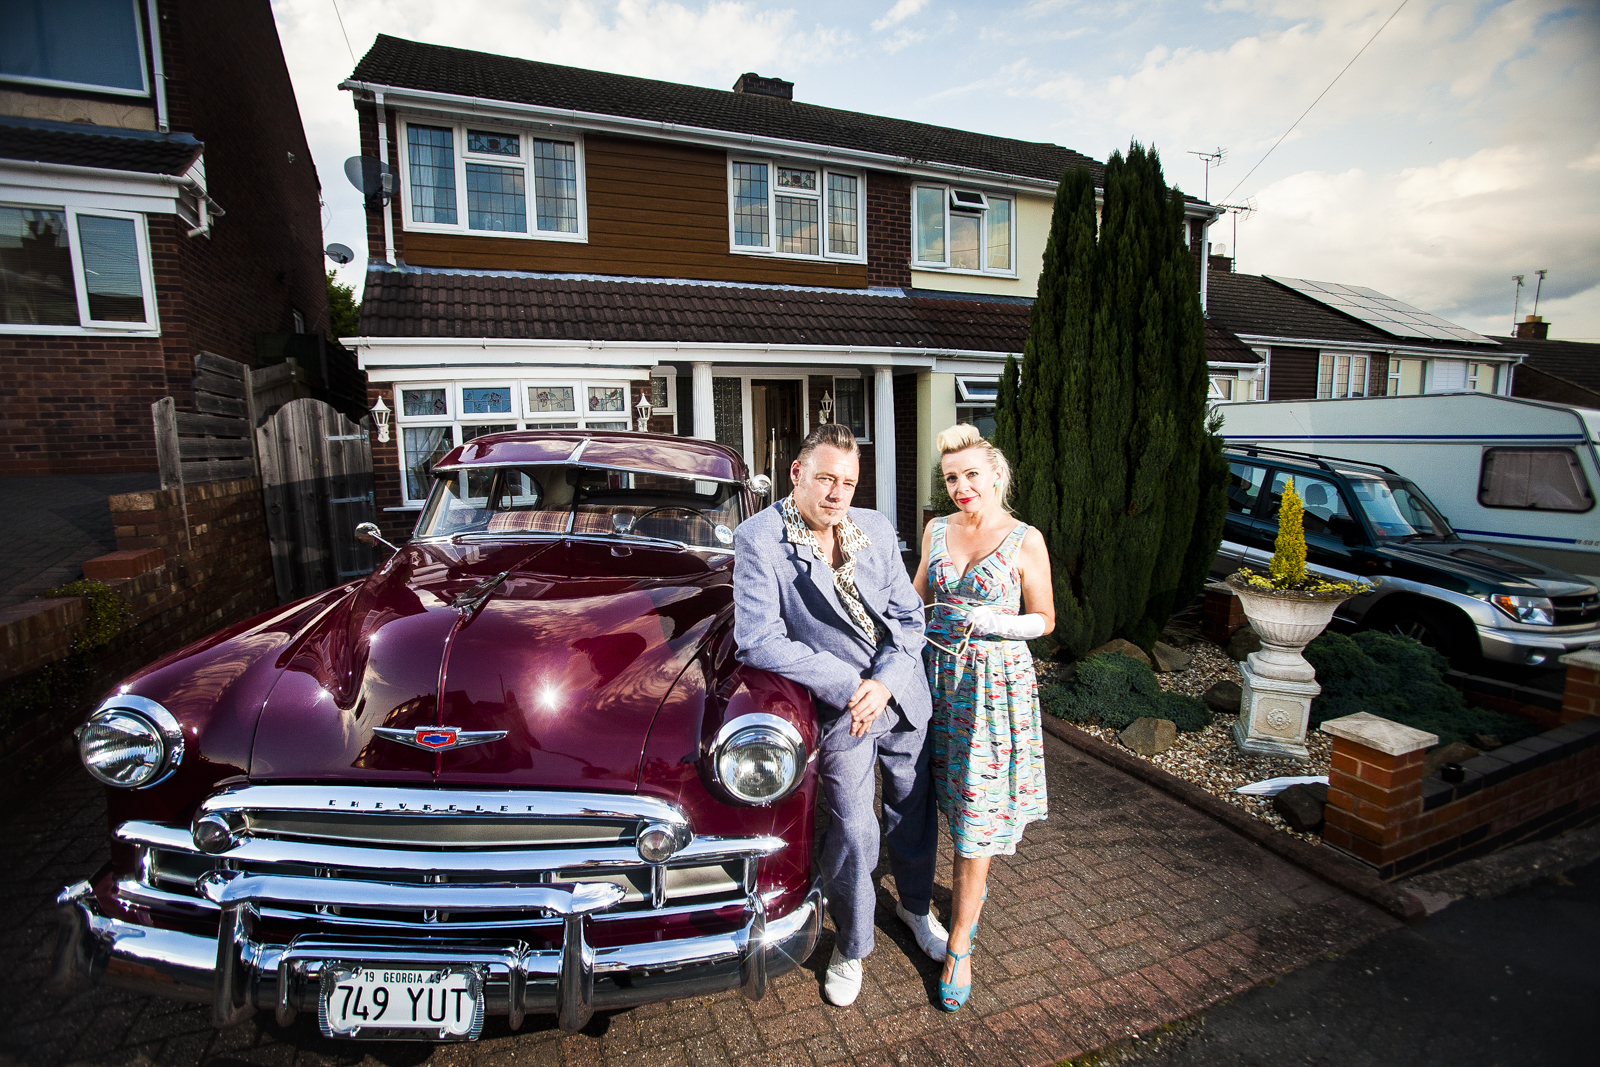 Mandy and Gary Jones, from Tamworth in Staffordshire.  Avid fans of the 1950's  lifestyle, Mandy and Gary  transformed their kitchen into a 50's style diner, complete with original 1950's memorabilia, and even have a classic 1949 Chevrolet parked in their driveway.